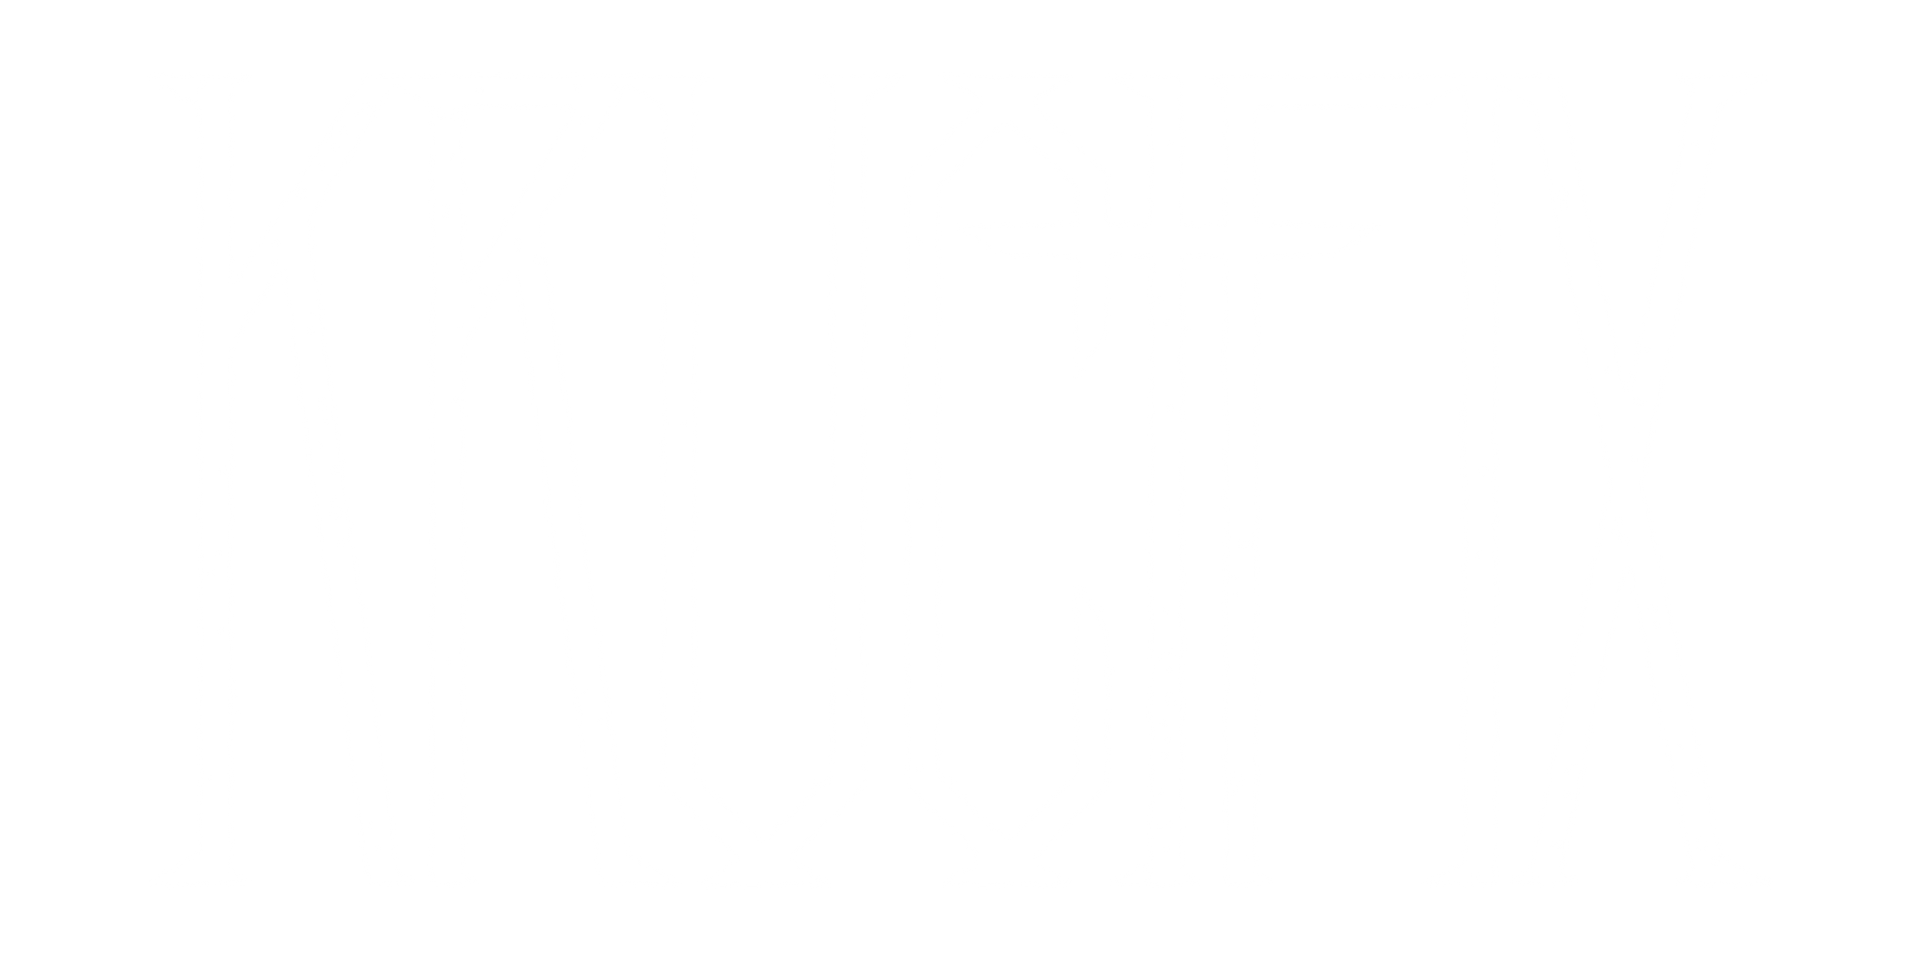 Logo Design for Krucifix, an American nu-metalcore band with influences from the modern trap sound. The line-up is from Chicago, Illinois.